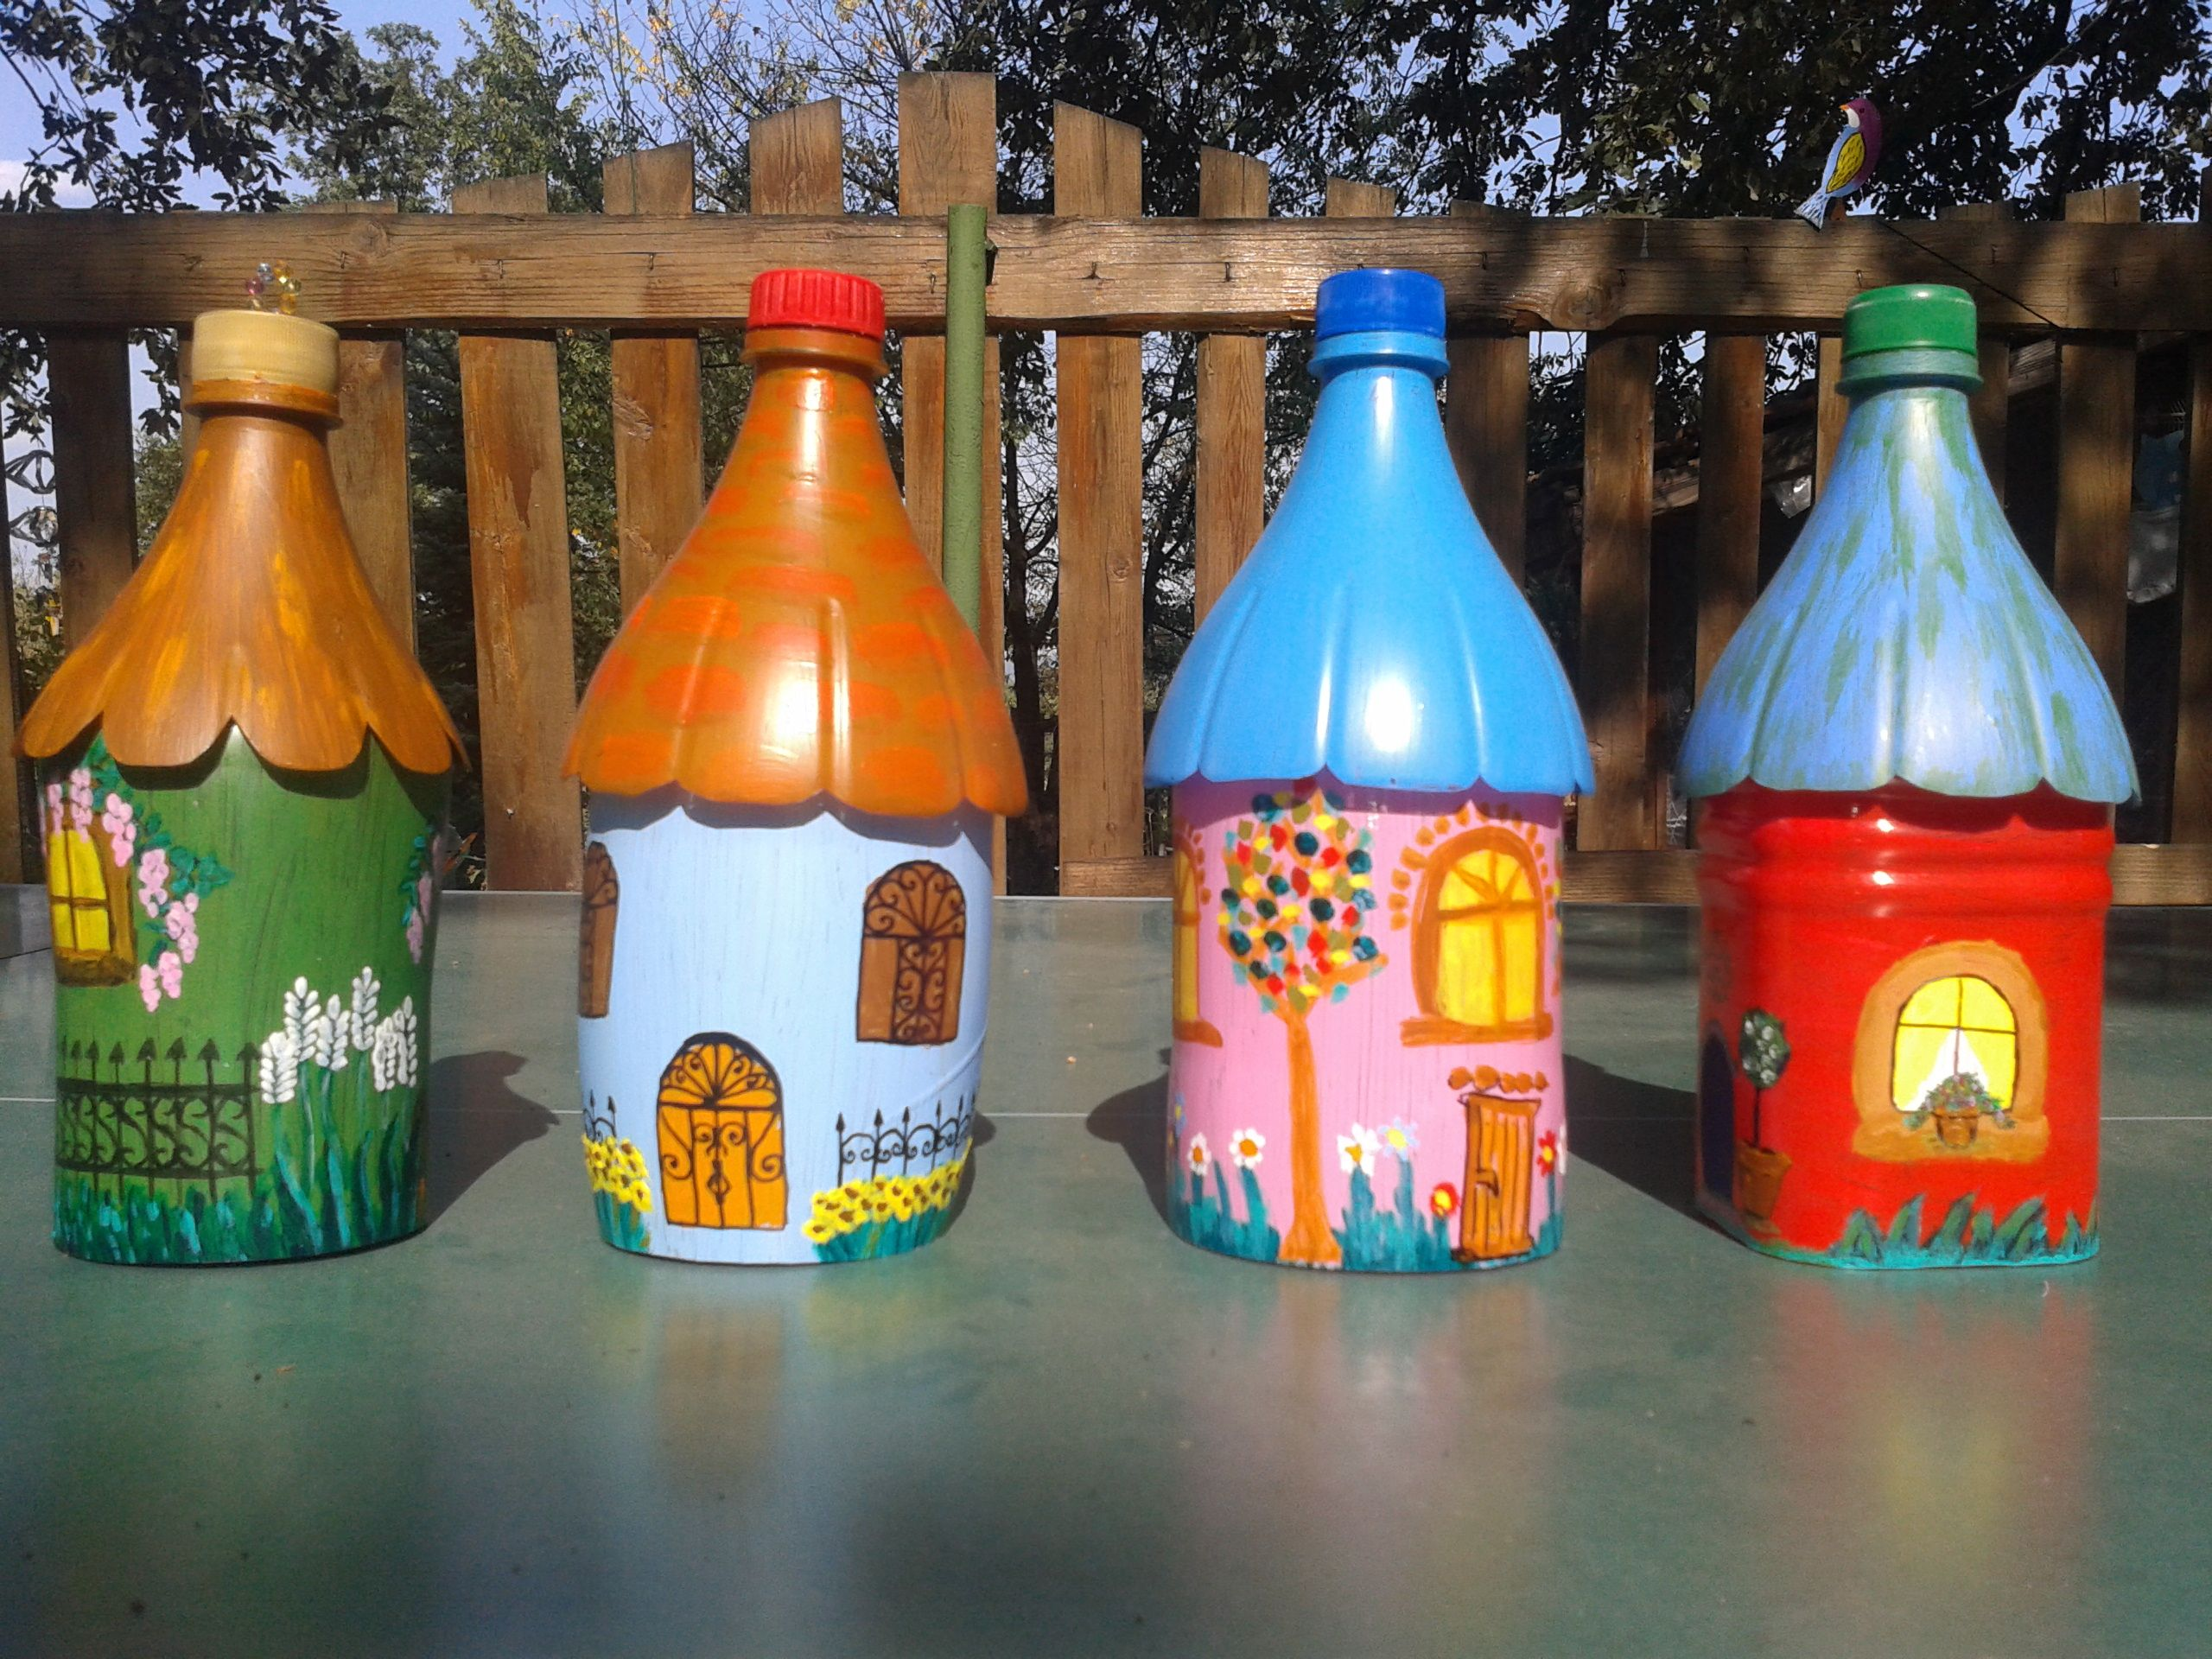 DIY soda bottle birdhouses are easy to make with your grandchildren